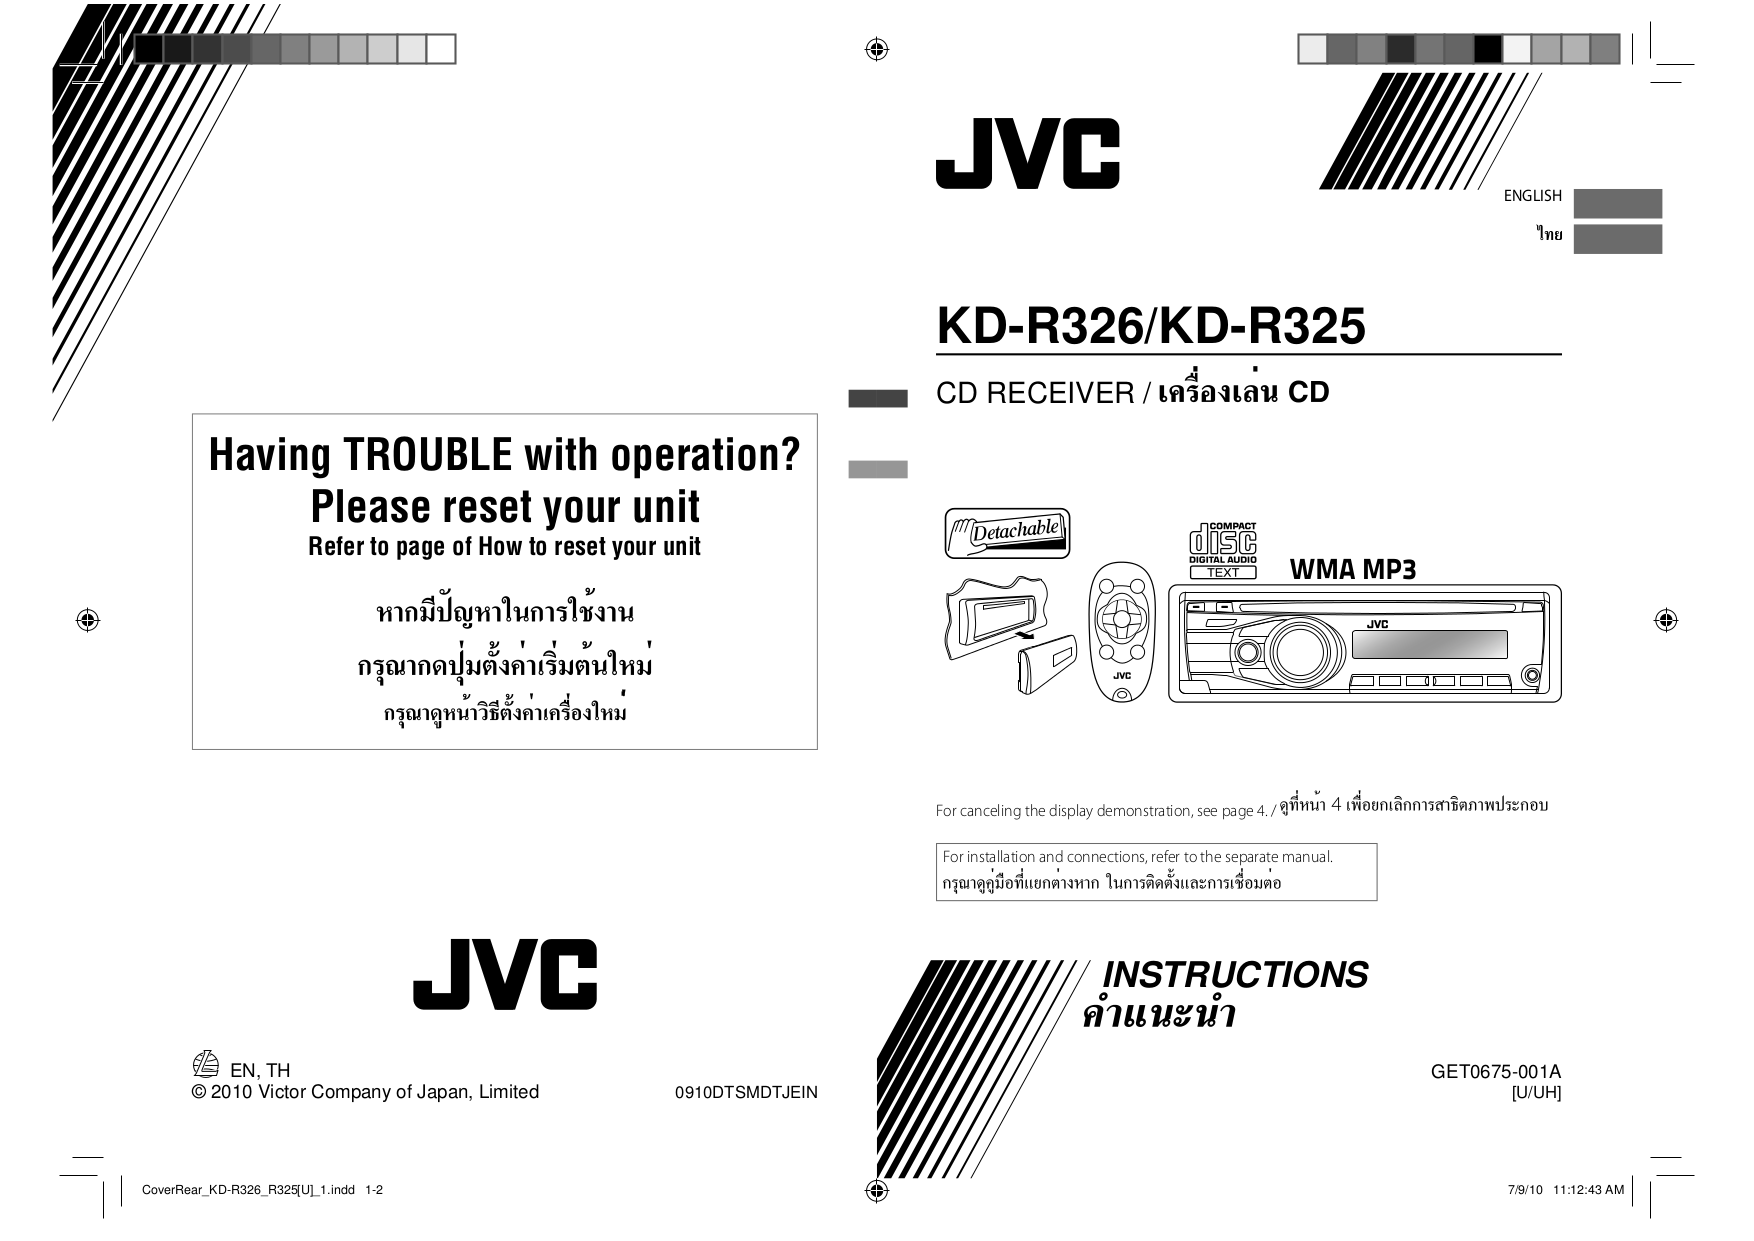 KD R326 Instruction Manual.pdf 0 jvc kd r326 wiring diagram jvc kd r326 wiring diagram \u2022 free jvc kd r320 wiring diagram at fashall.co